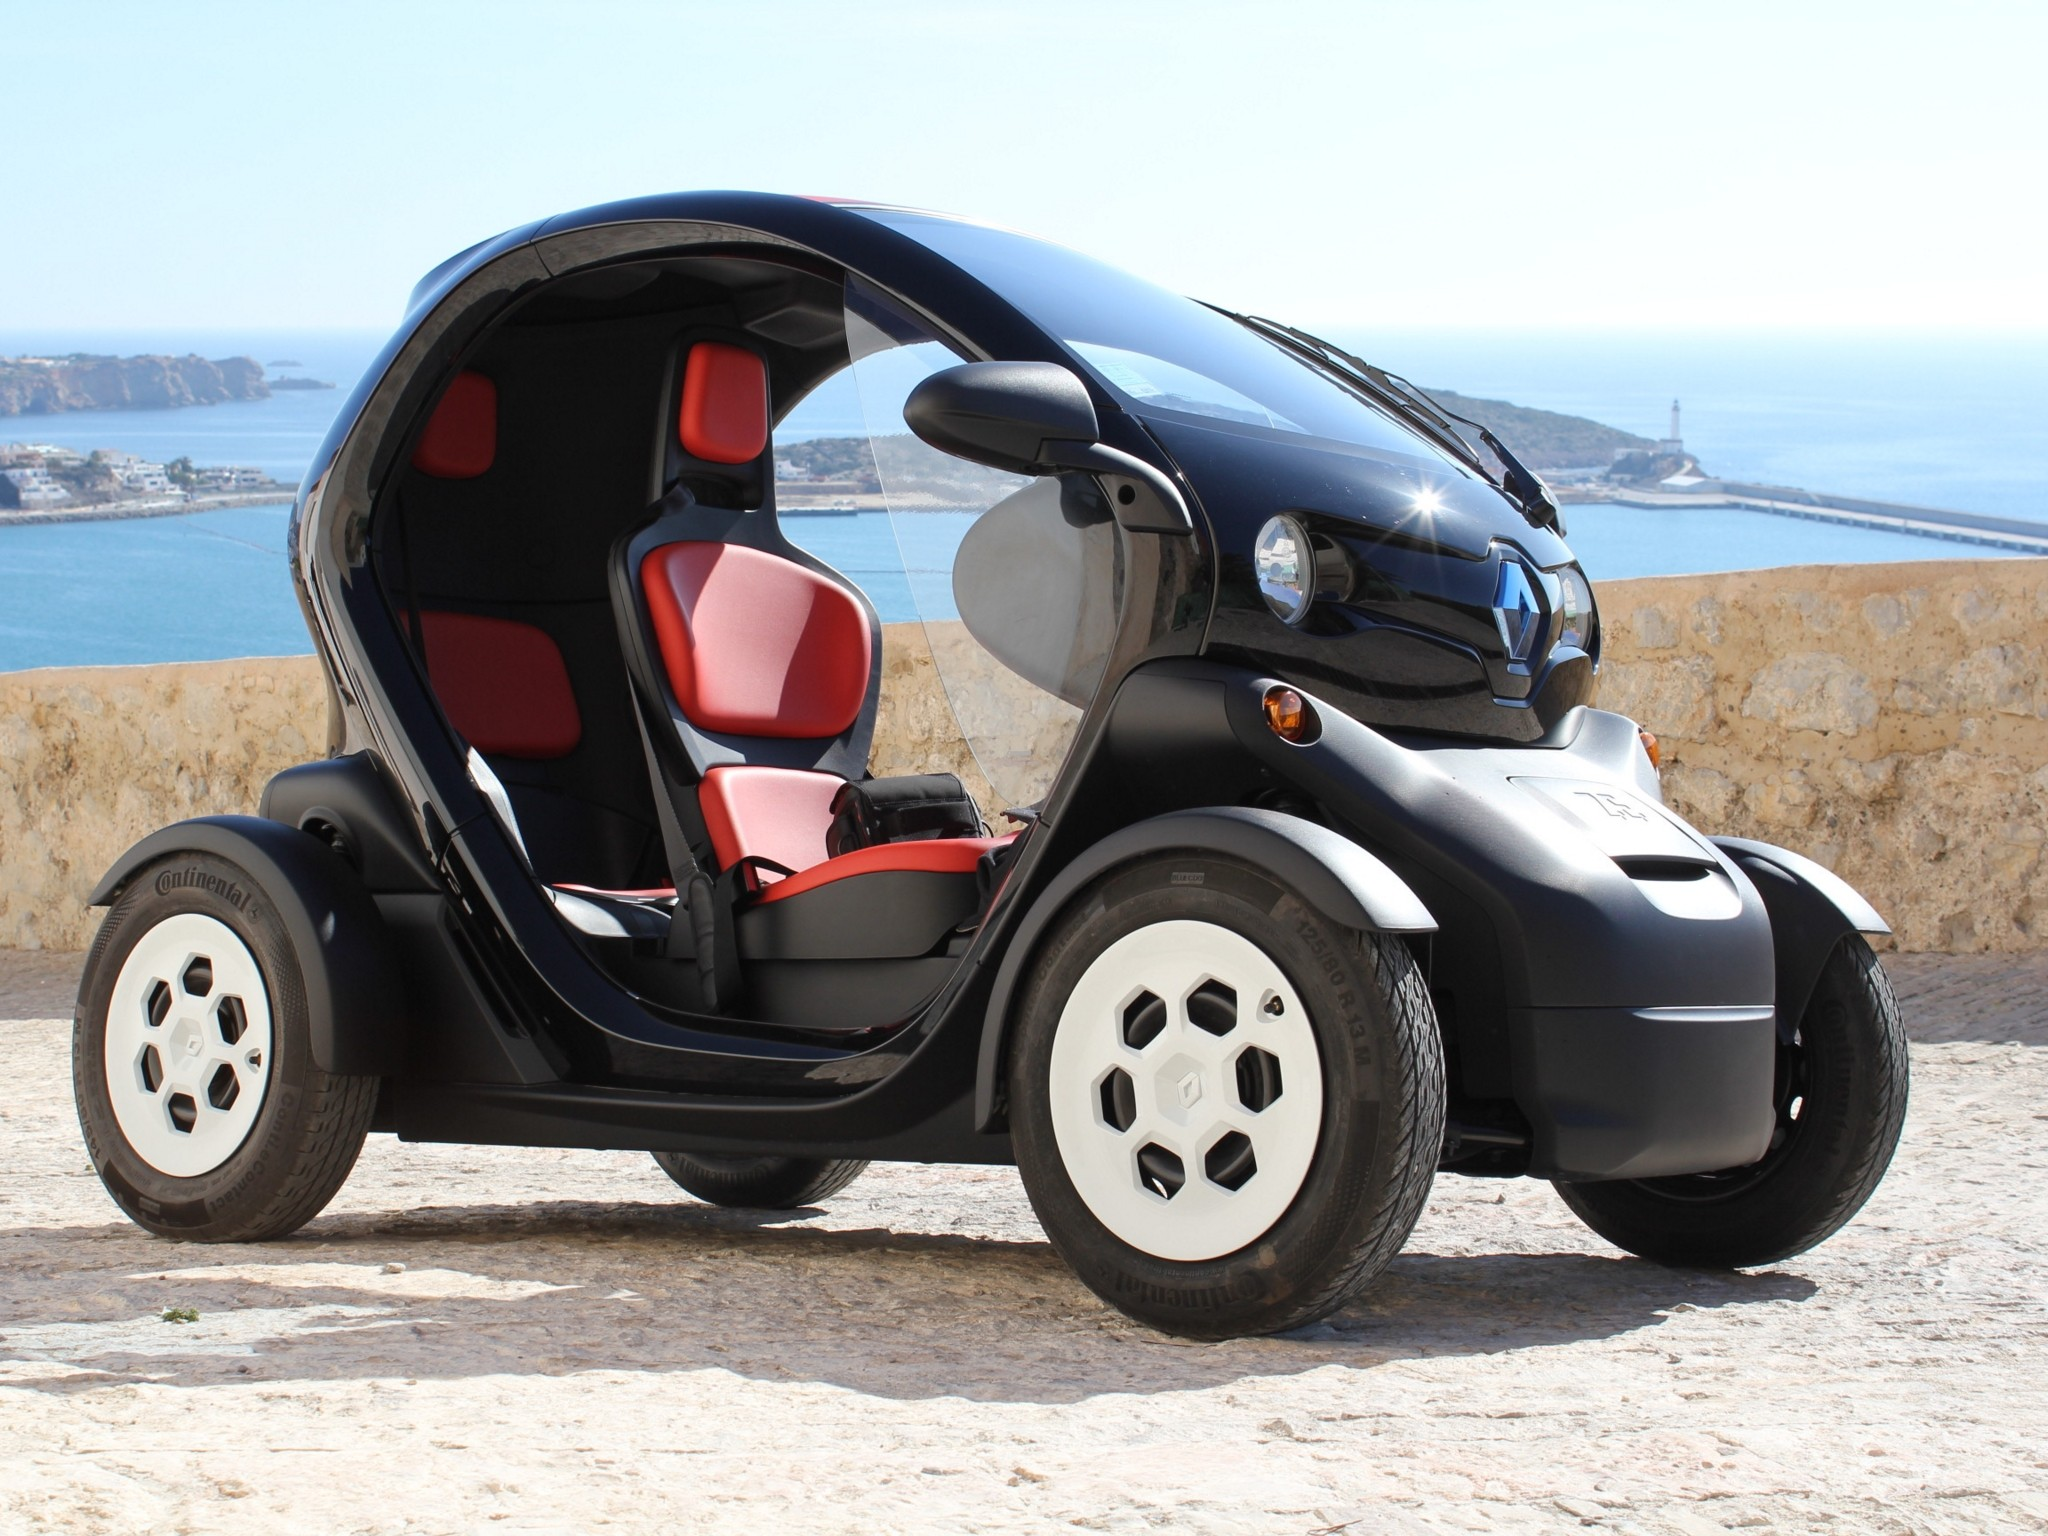 renault sandero with Renault Twizy 2012 on Watch further Watch also Primele Imagini Cu Dacia Sandero 2019 furthermore Dacia Sandero 2016 Publicidad Honesta additionally Renault Twizy 2012.